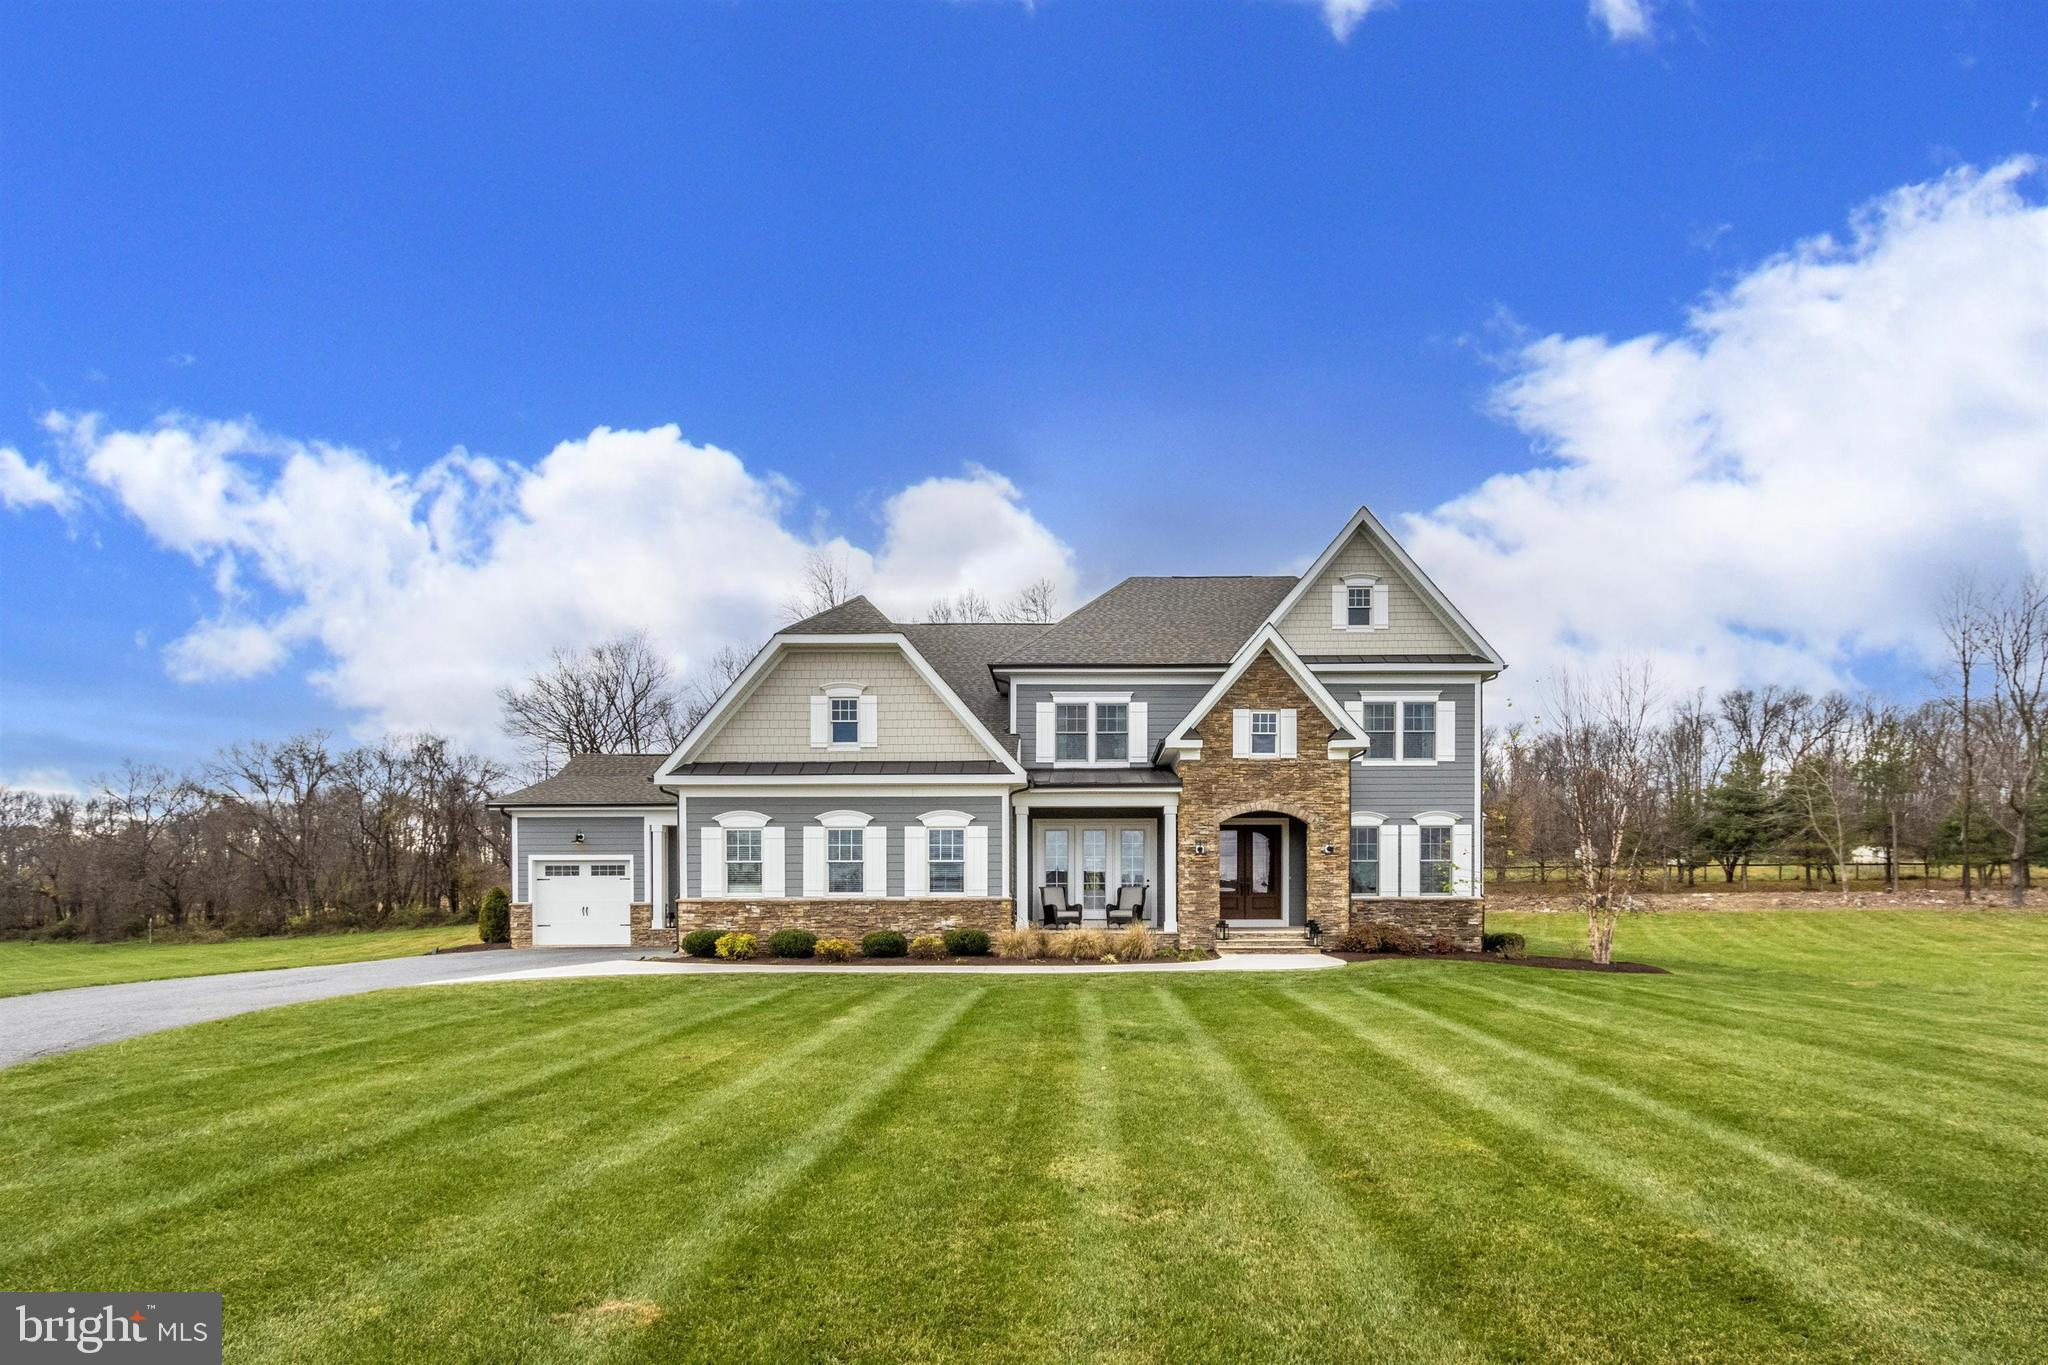 Beautiful home in the sought after Manor at Holly Hills community. This amazing home is situated on